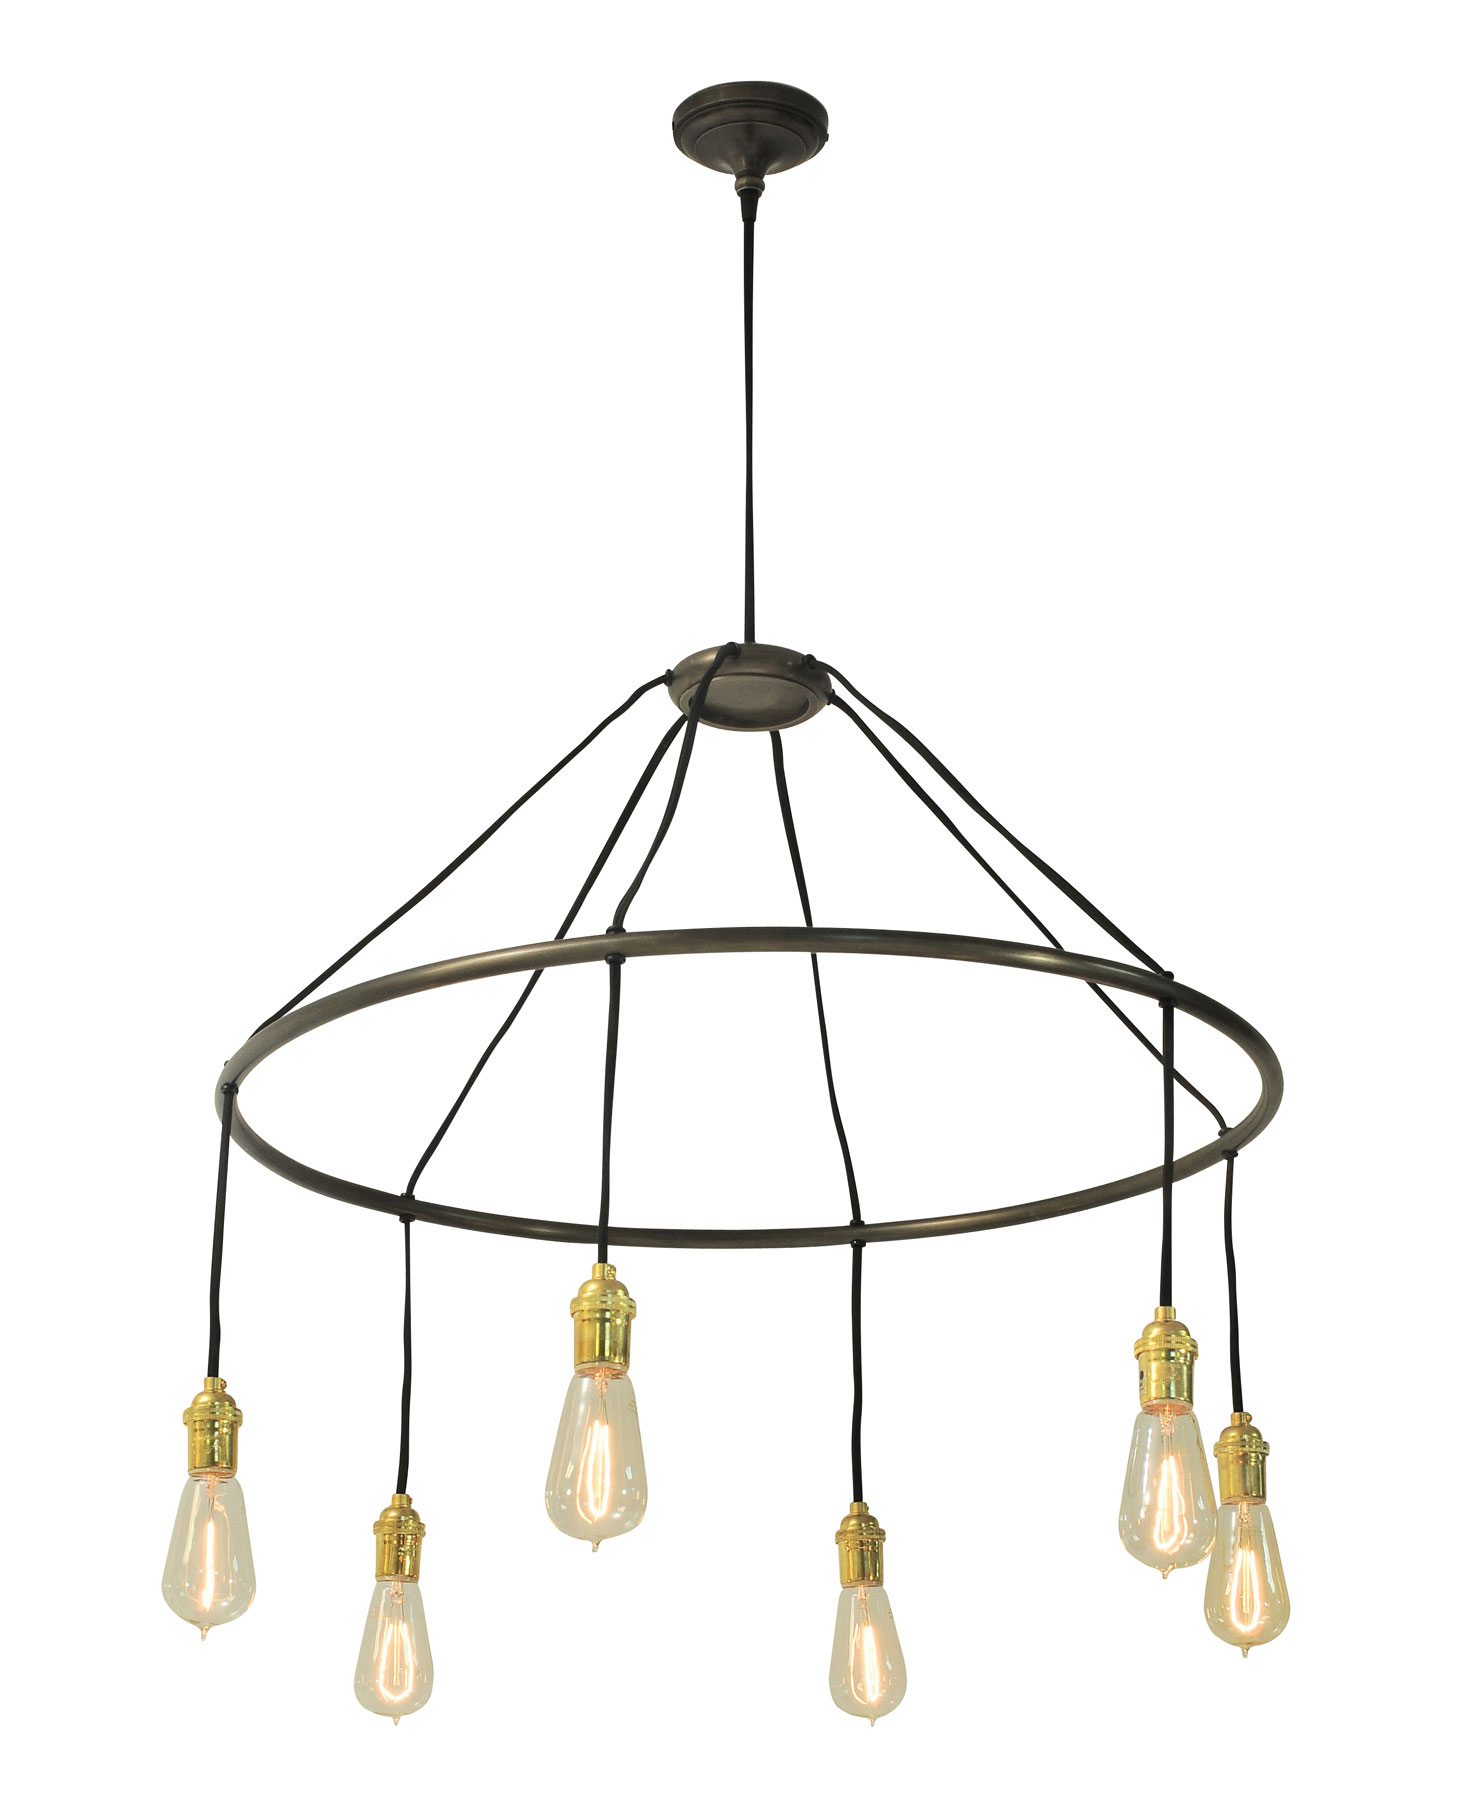 Chandelier by Roost